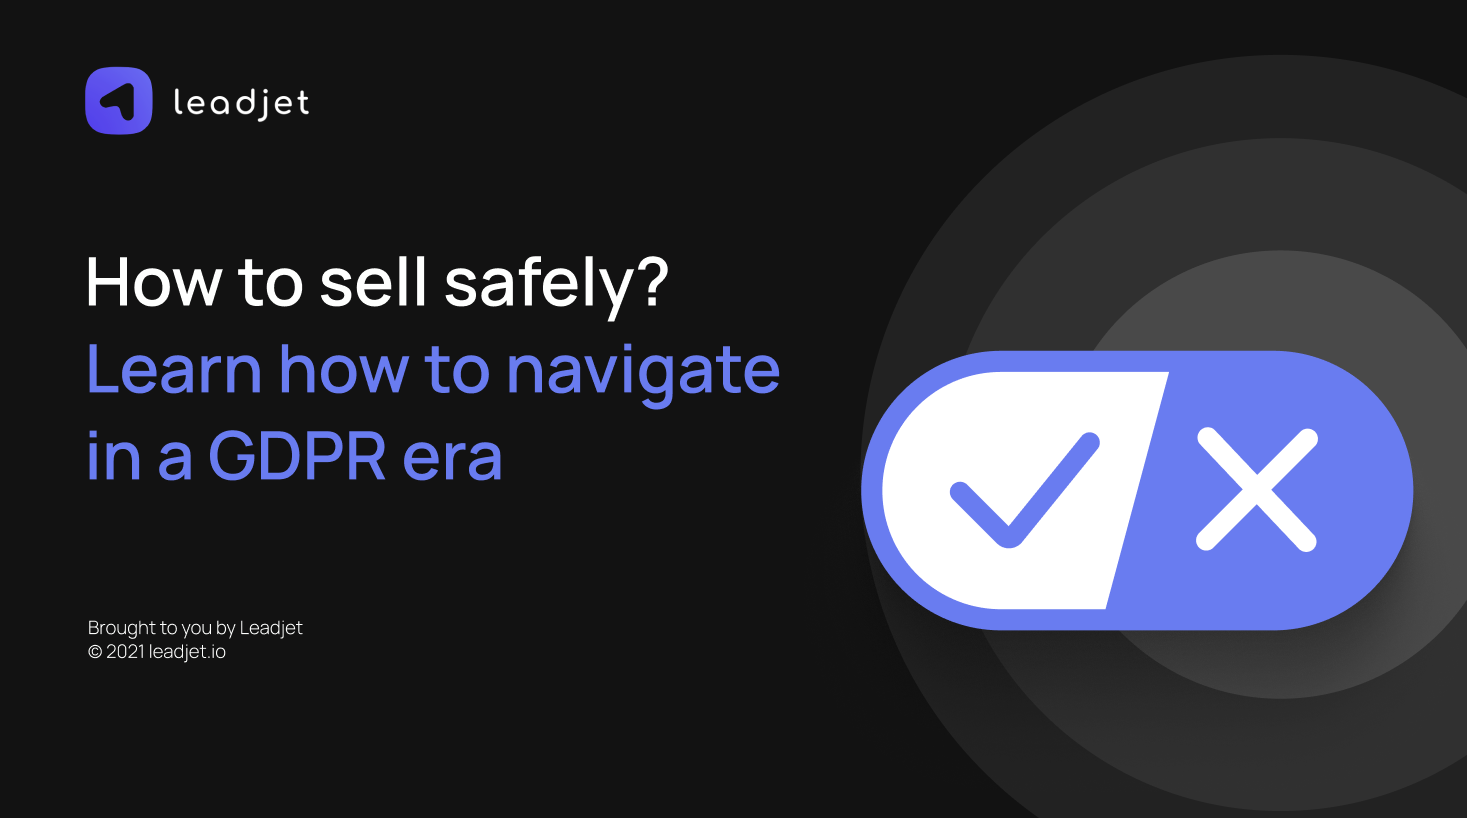 What is GDPR? How to navigate sales safely, in the GDPR era with Leadjet